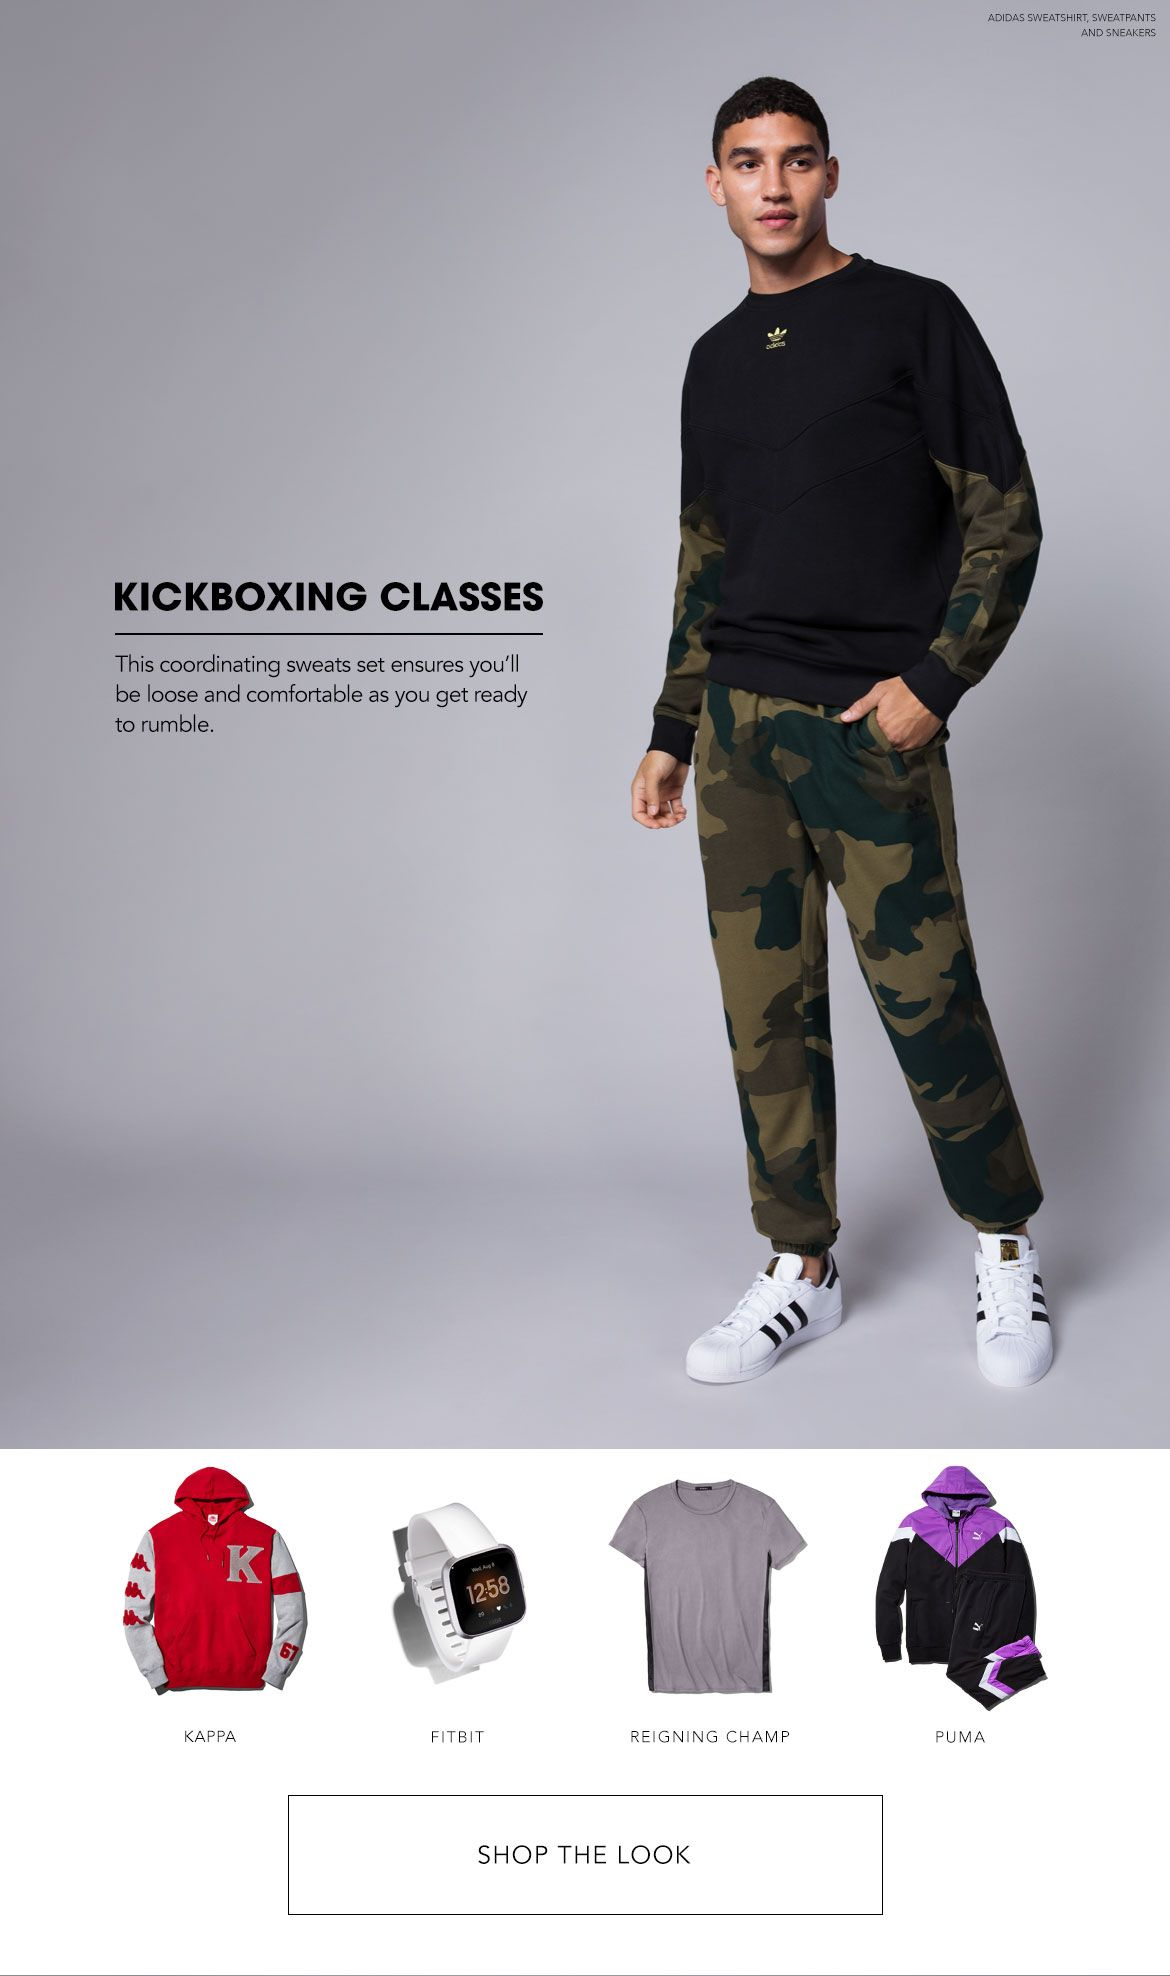 Styled for Kickboxing Classes